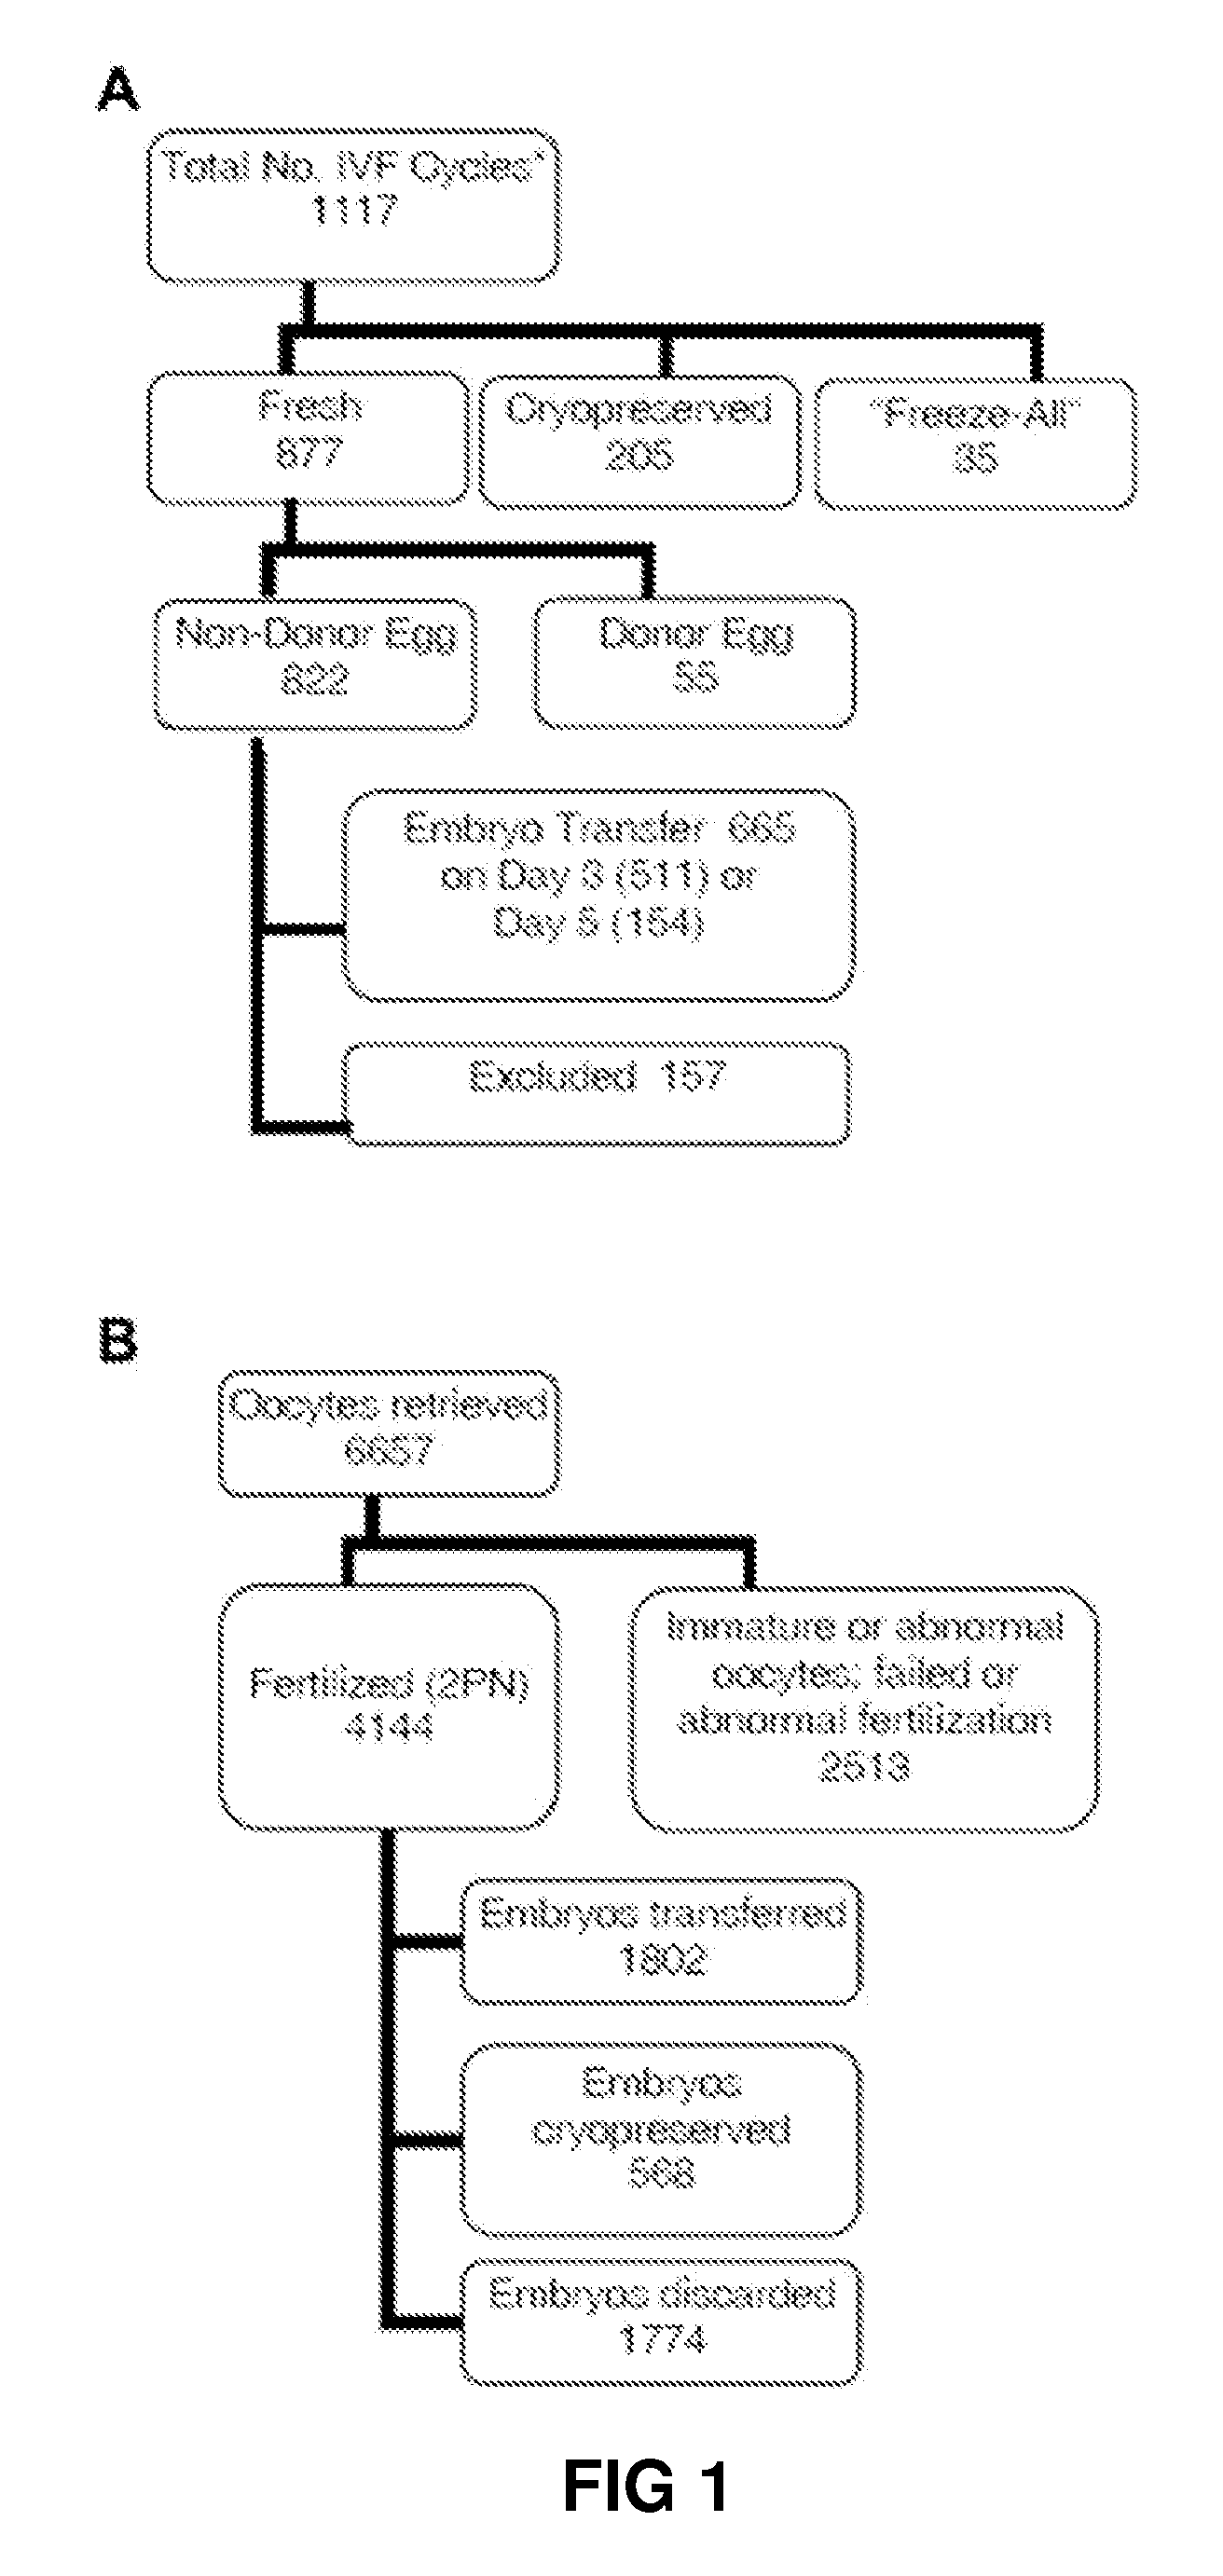 methods in the assessment of infertility Infertility has potentially inappropriate effects on quality of life in infertile couples various general and specific questionnaires have been structured for assessing different aspects of quality of life in infertile men, women, or couples the present systematic review was designed to assess.